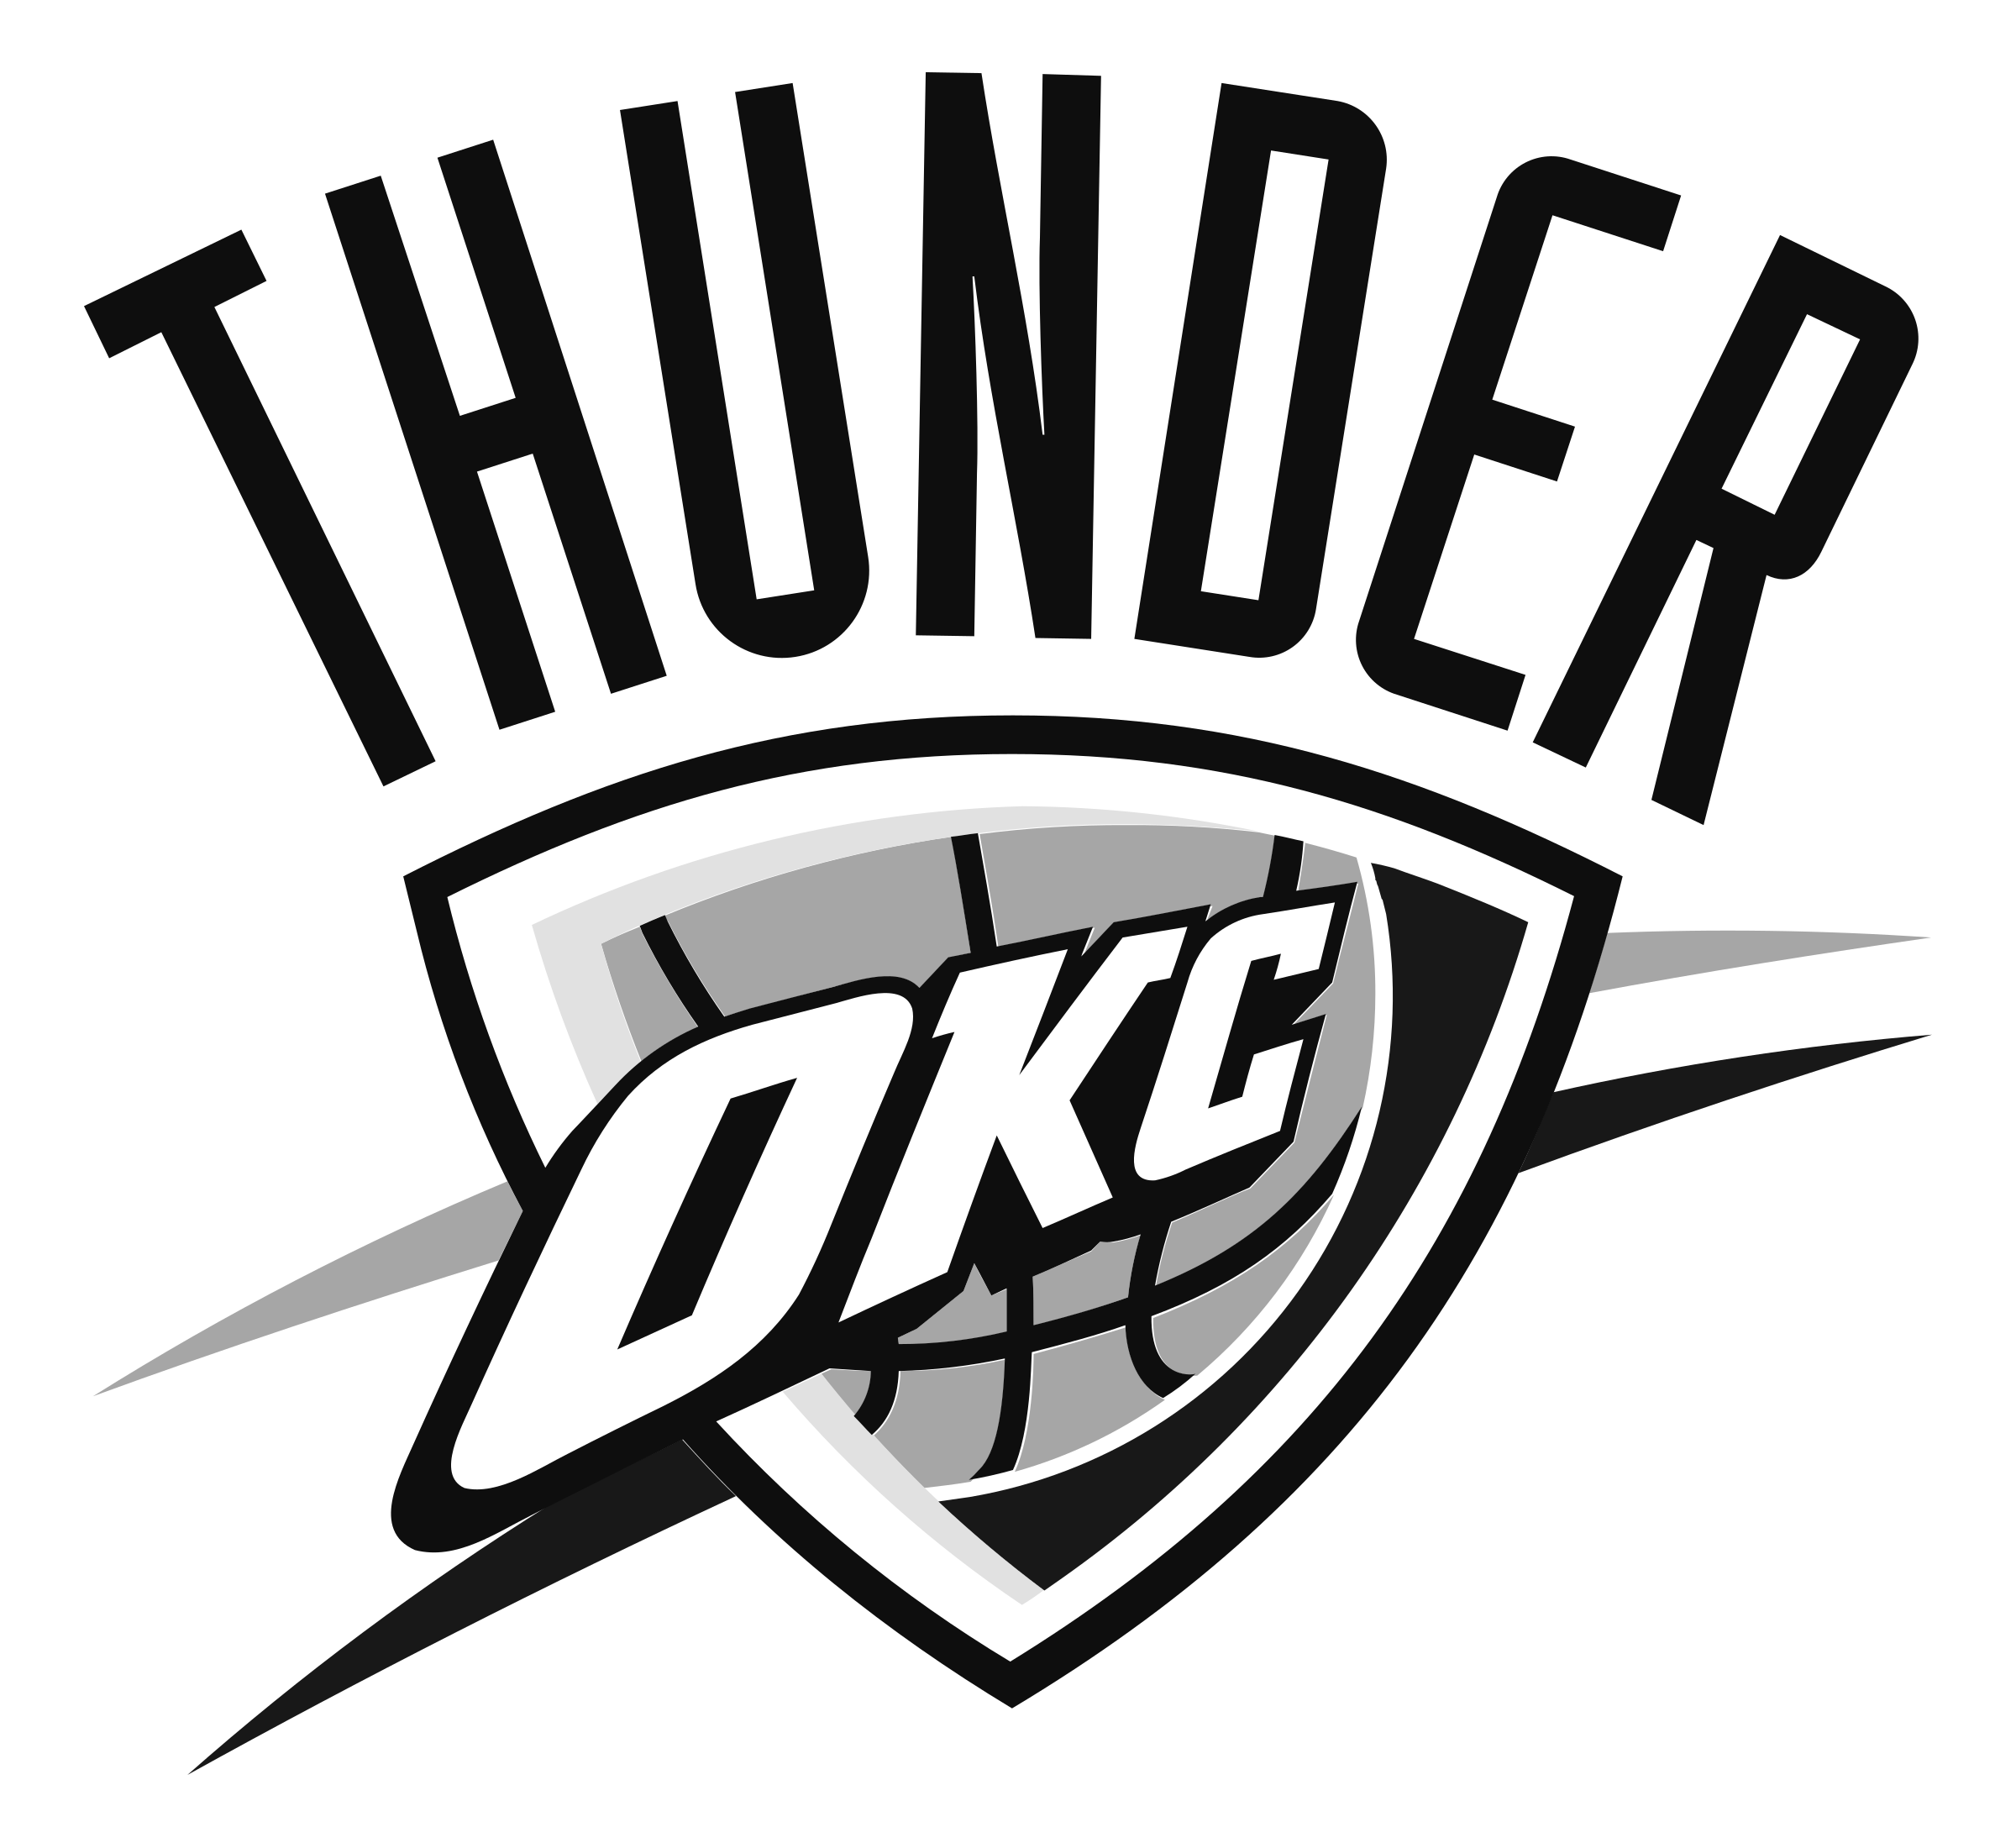 Oklahoma City Thunder Logo PNG Transparent & SVG Vector - Freebie Supply